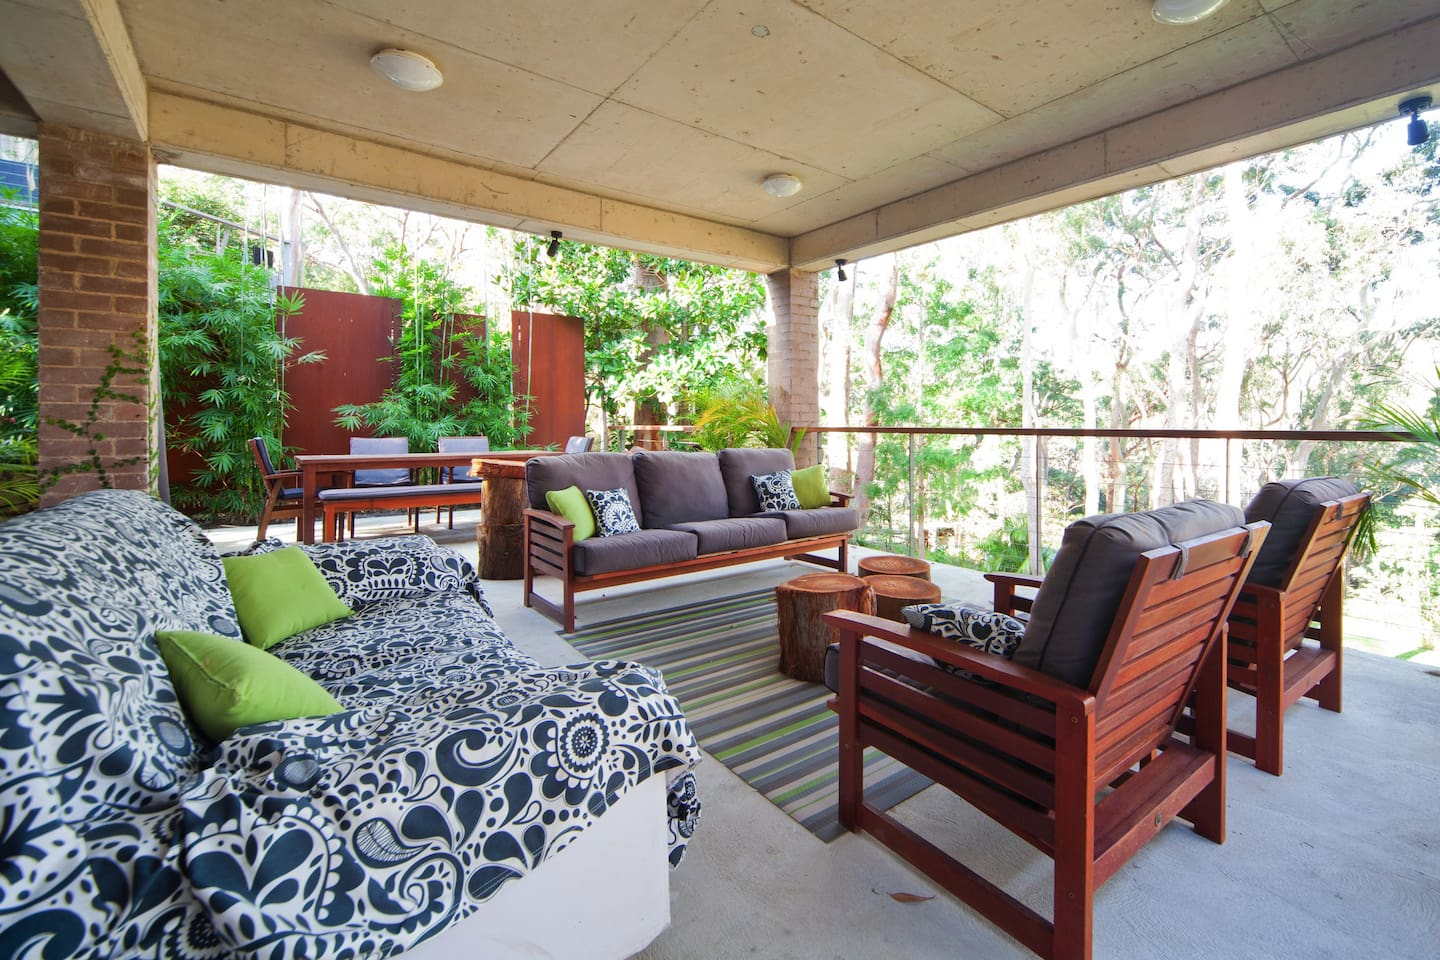 Shaded comfortable seating area on lower deck overlooking garden